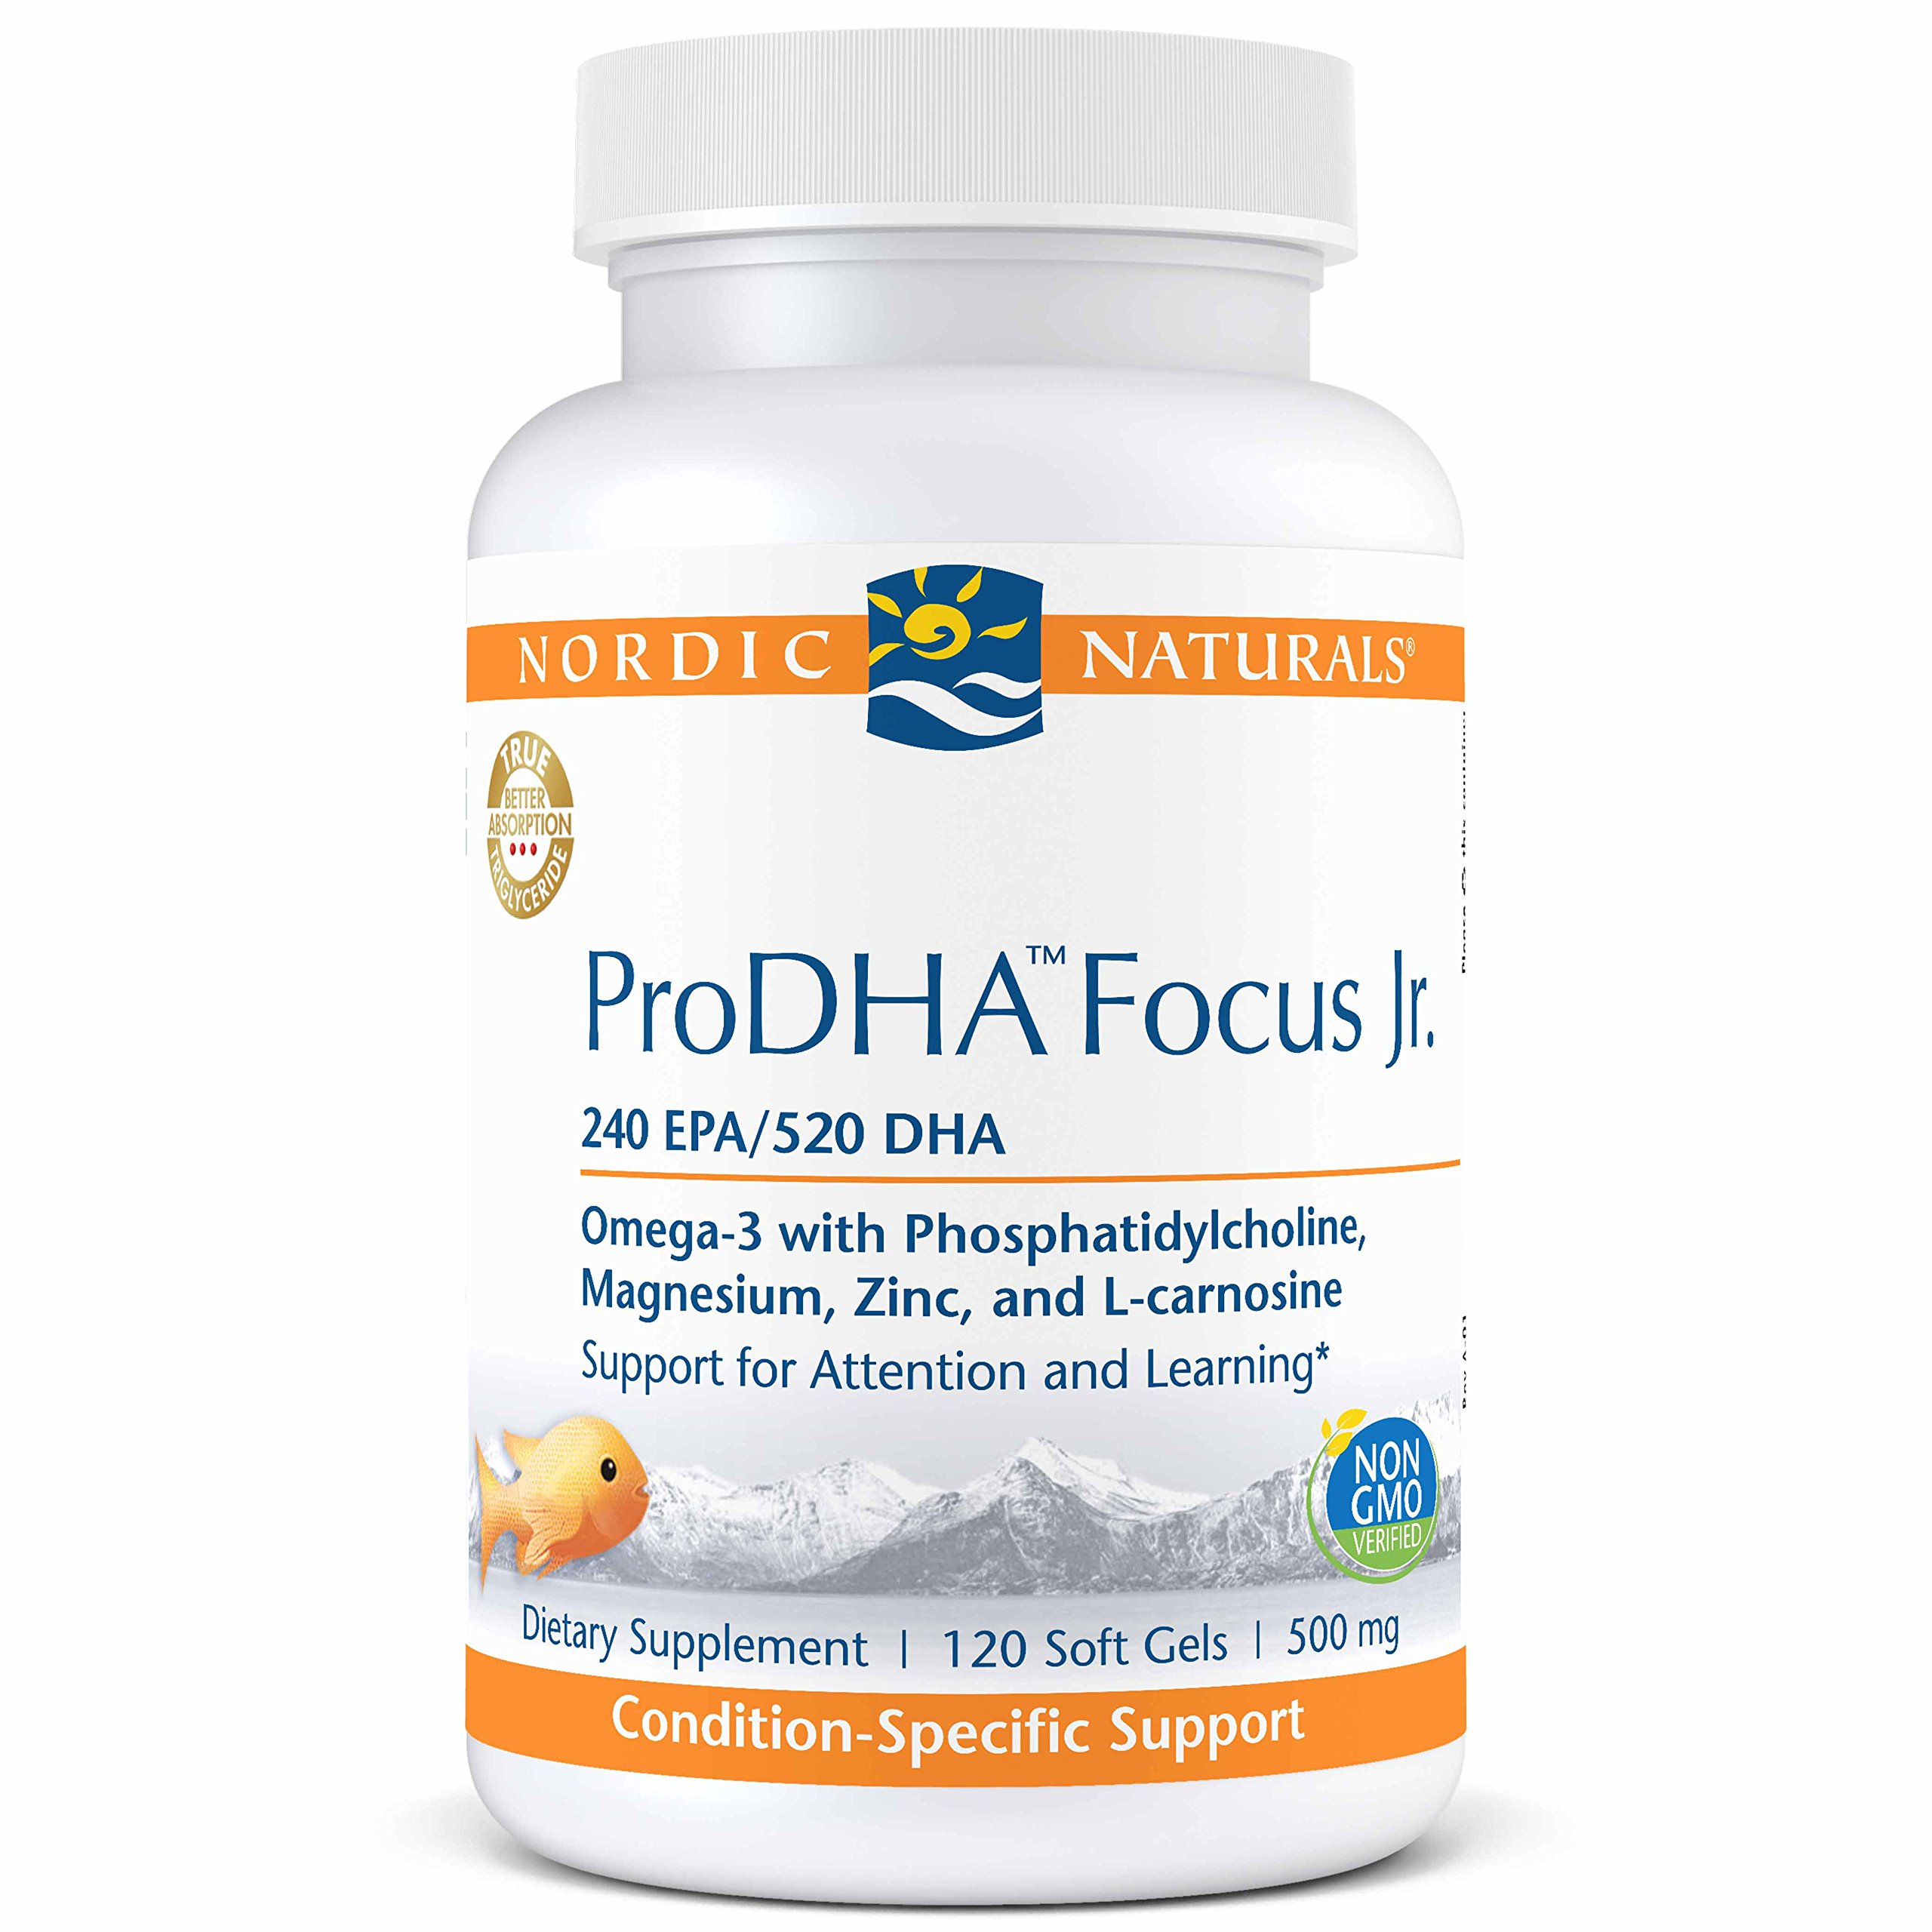 Nordic Naturals ProDHA Focus Jr. - Supports Development of The Brain and Nervous System, Facilitates Communication Between Nerves, and Promotes Attention and Learning- 120 Soft Gels